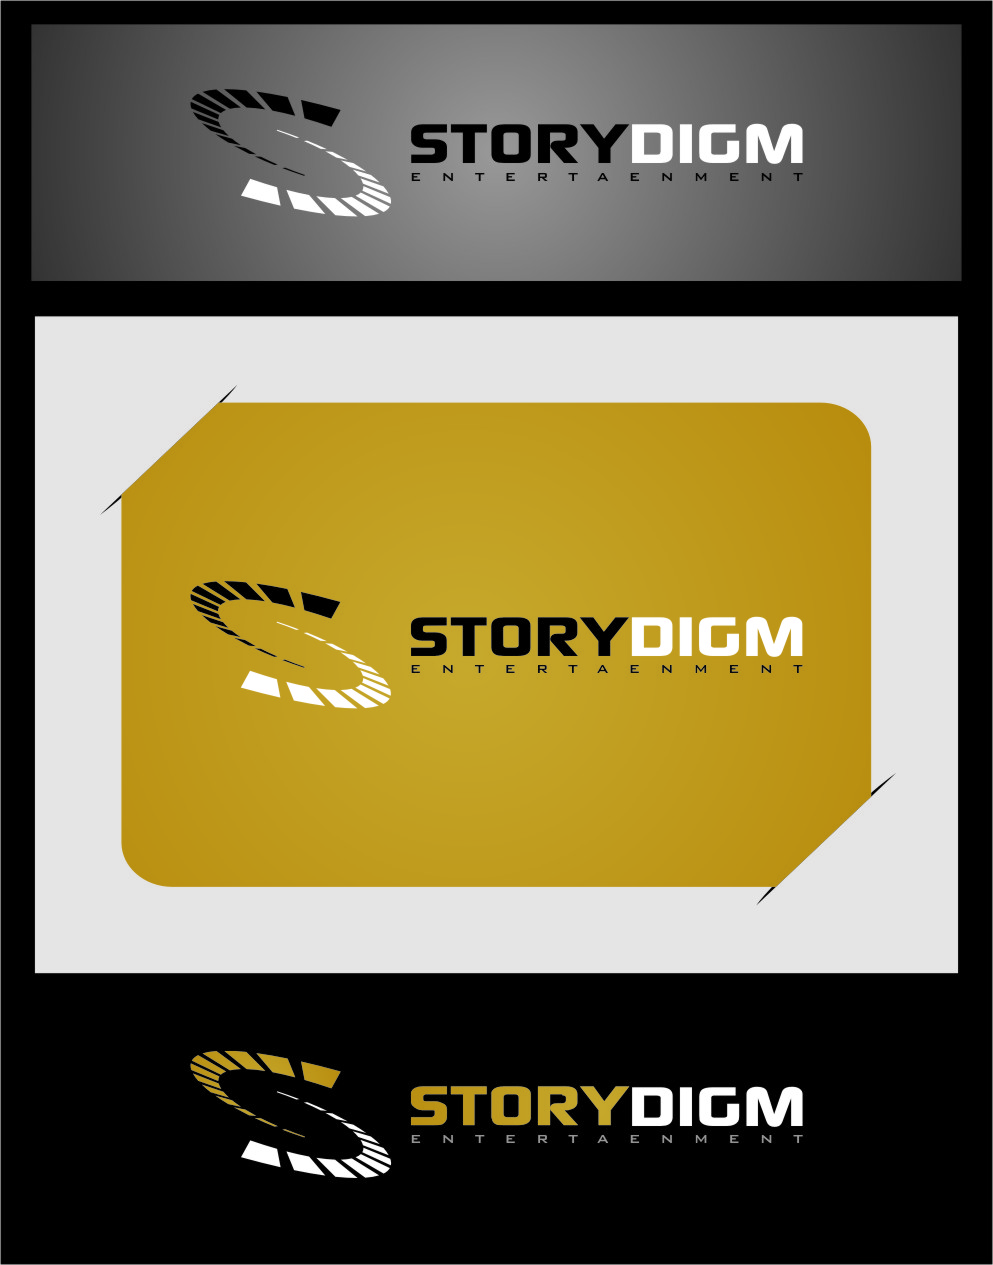 Logo Design by Ngepet_art - Entry No. 37 in the Logo Design Contest Inspiring Logo Design for Storydigm Entertainment.